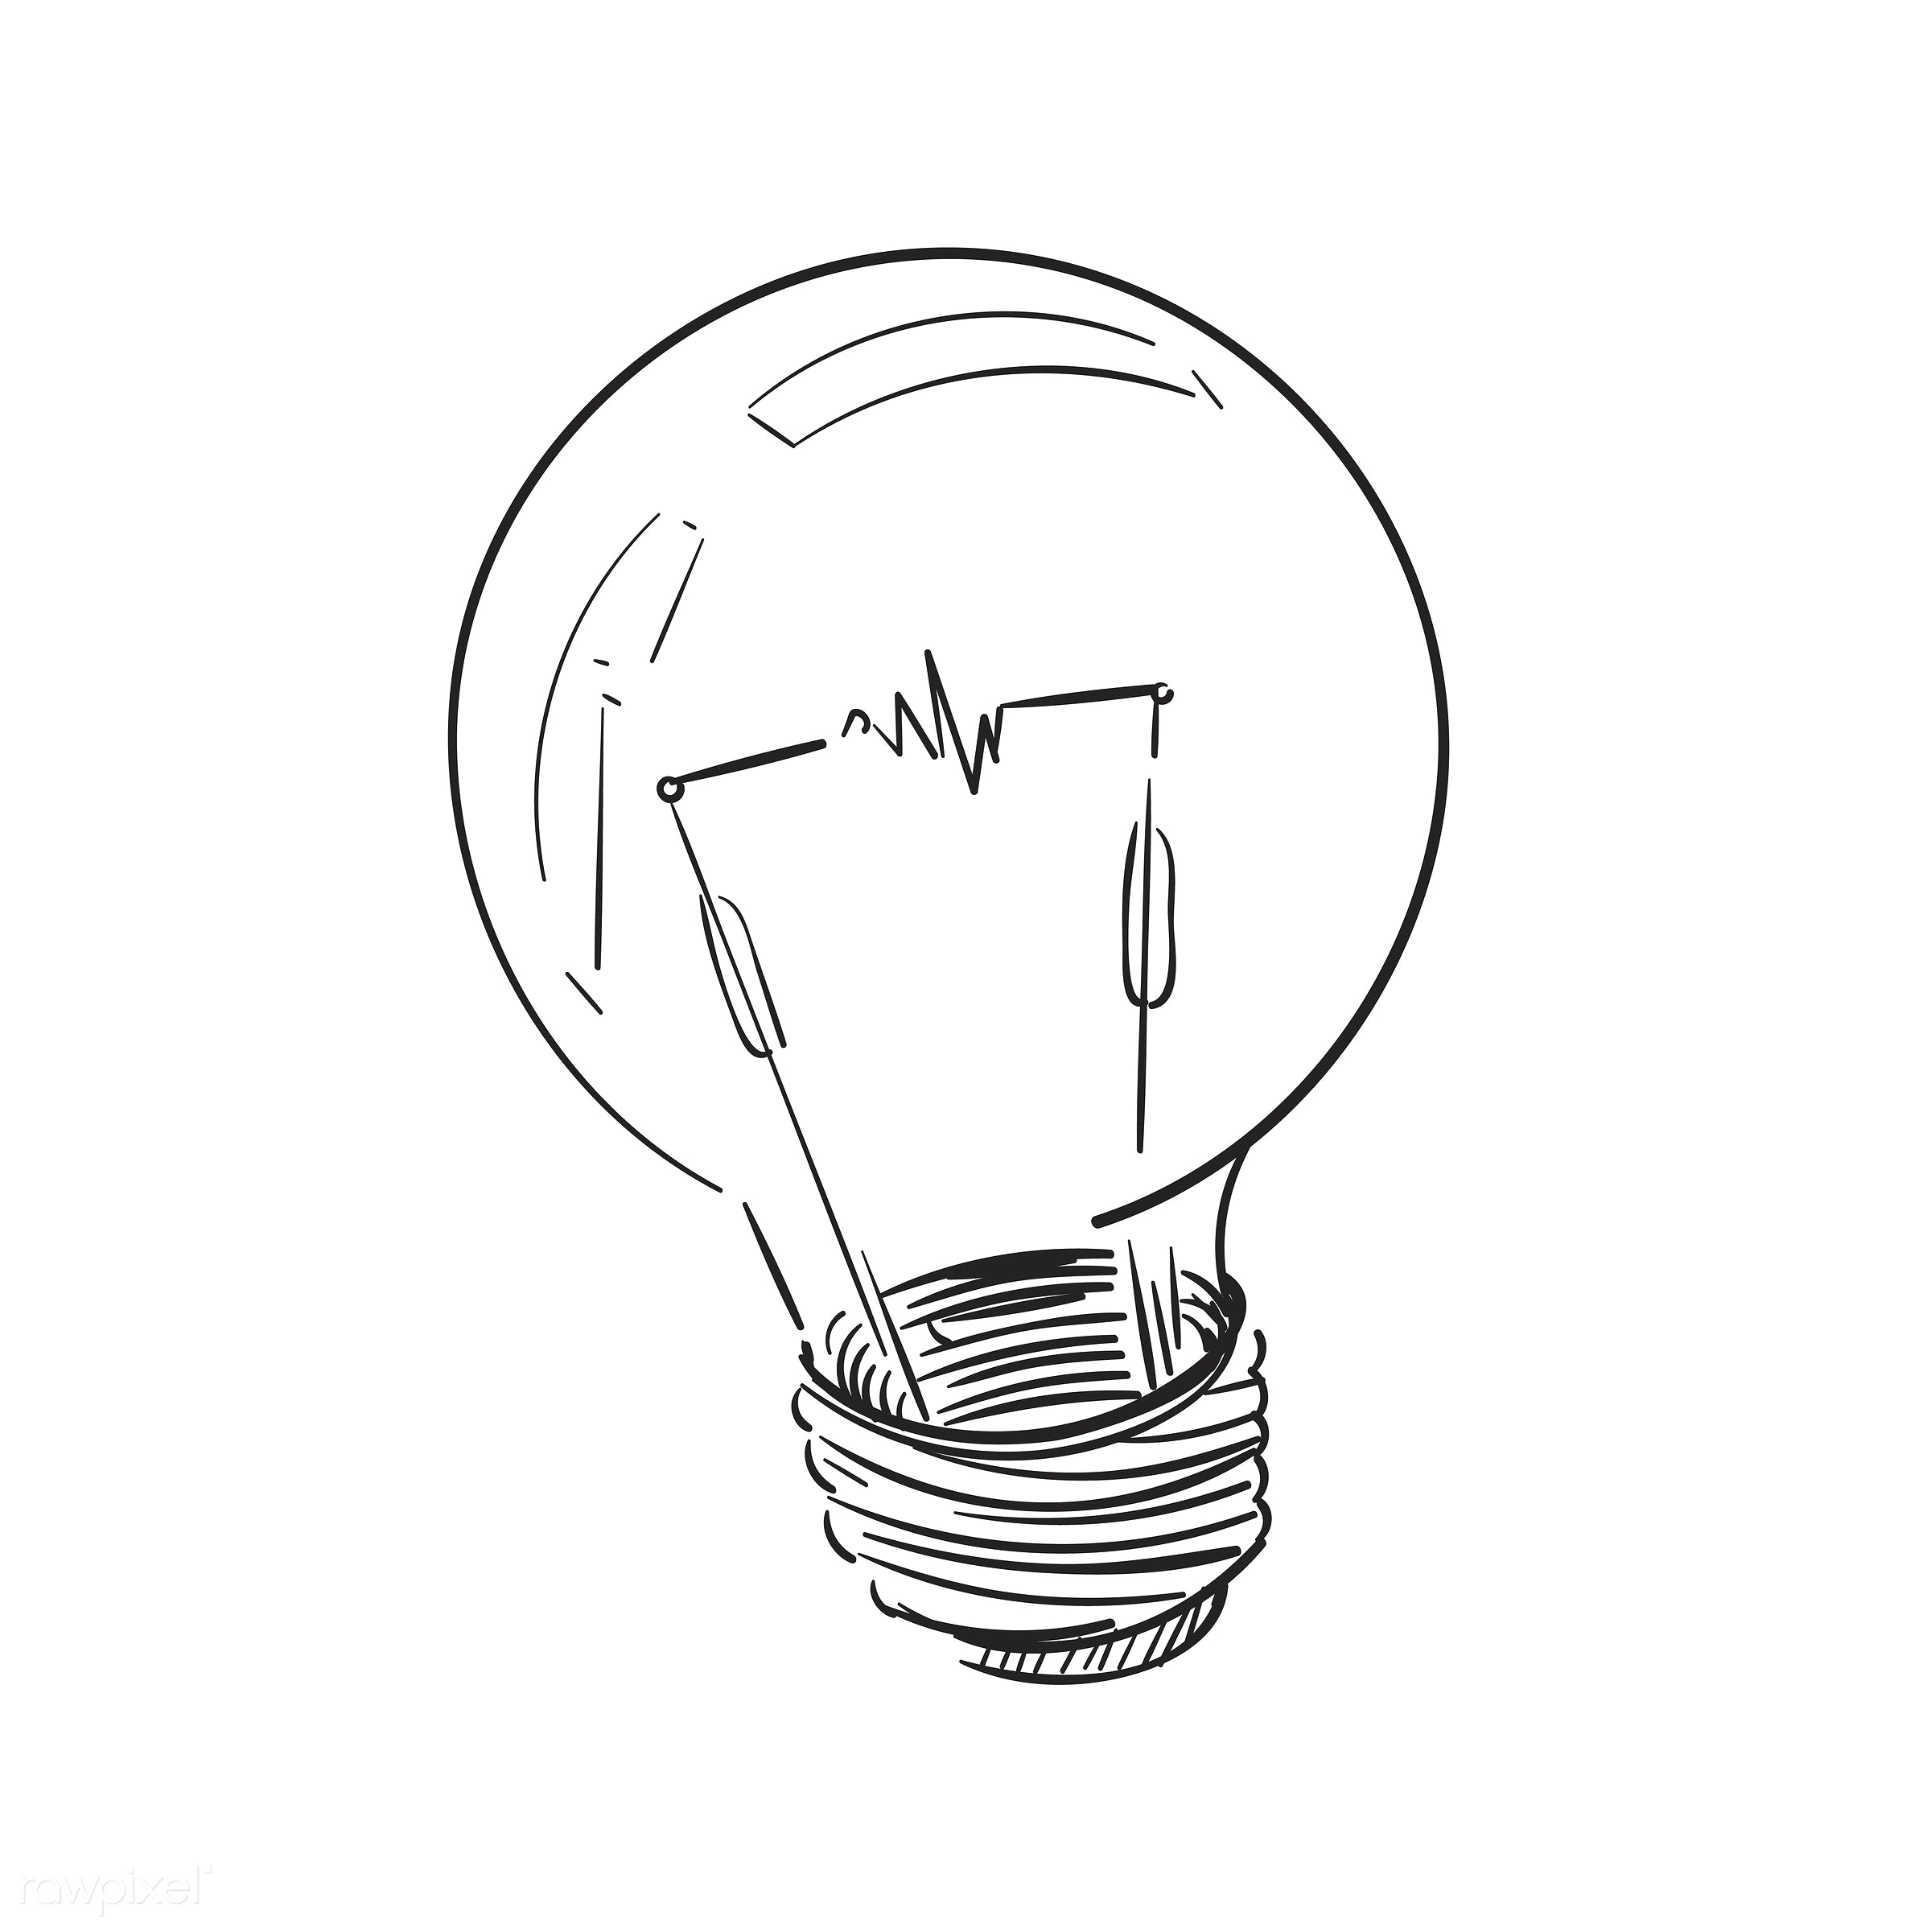 Illustration drawing of light bulb - electricity, electric, light, inspiration, icon, illustration, drawing, vector, symbol...